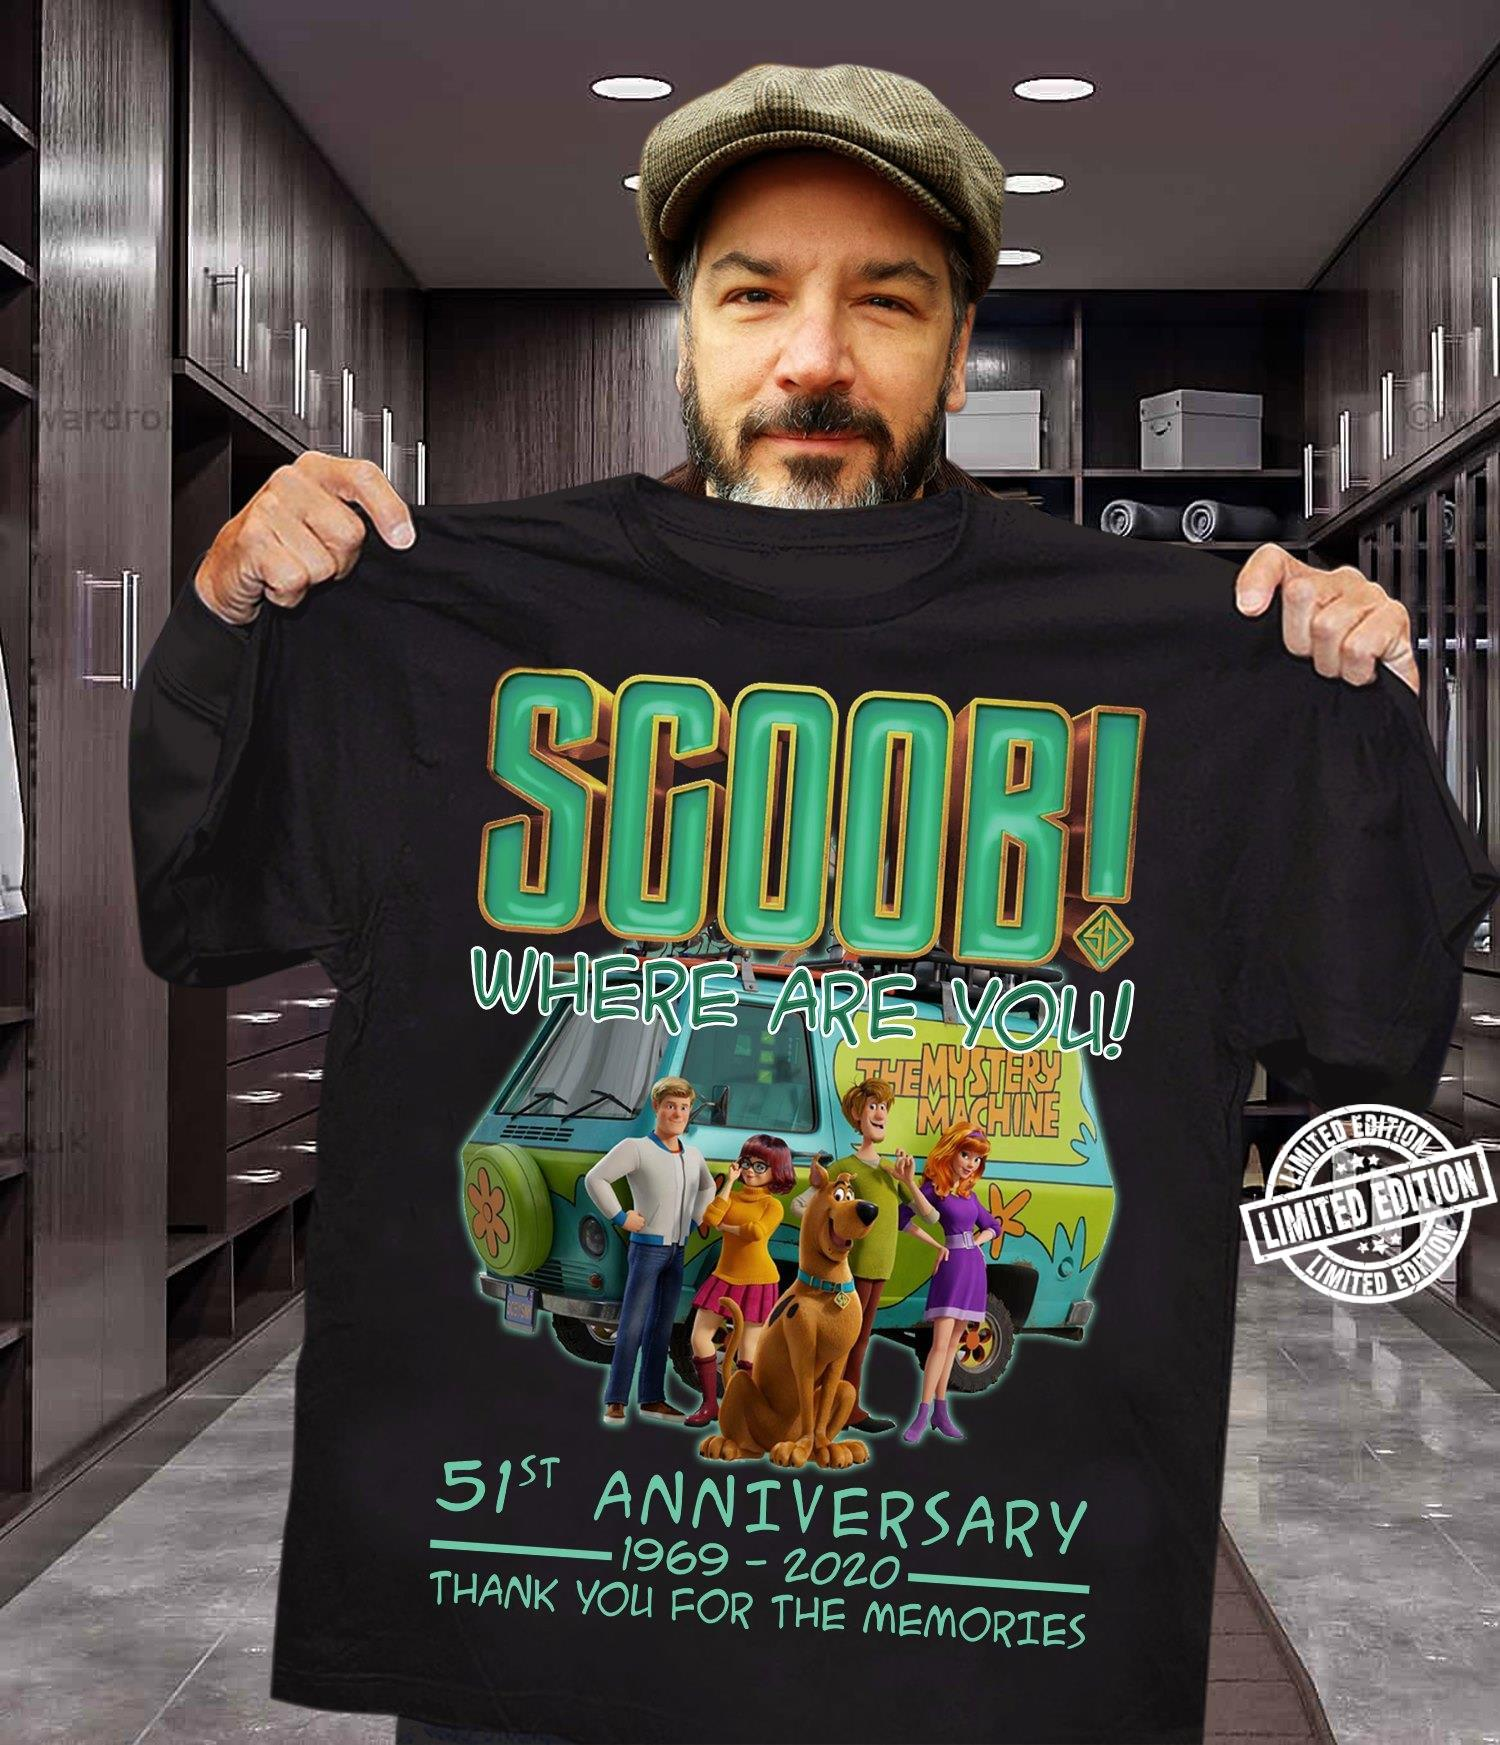 Scoob where are you 51st anniversary 1969-2020 thank you for the memories shirt